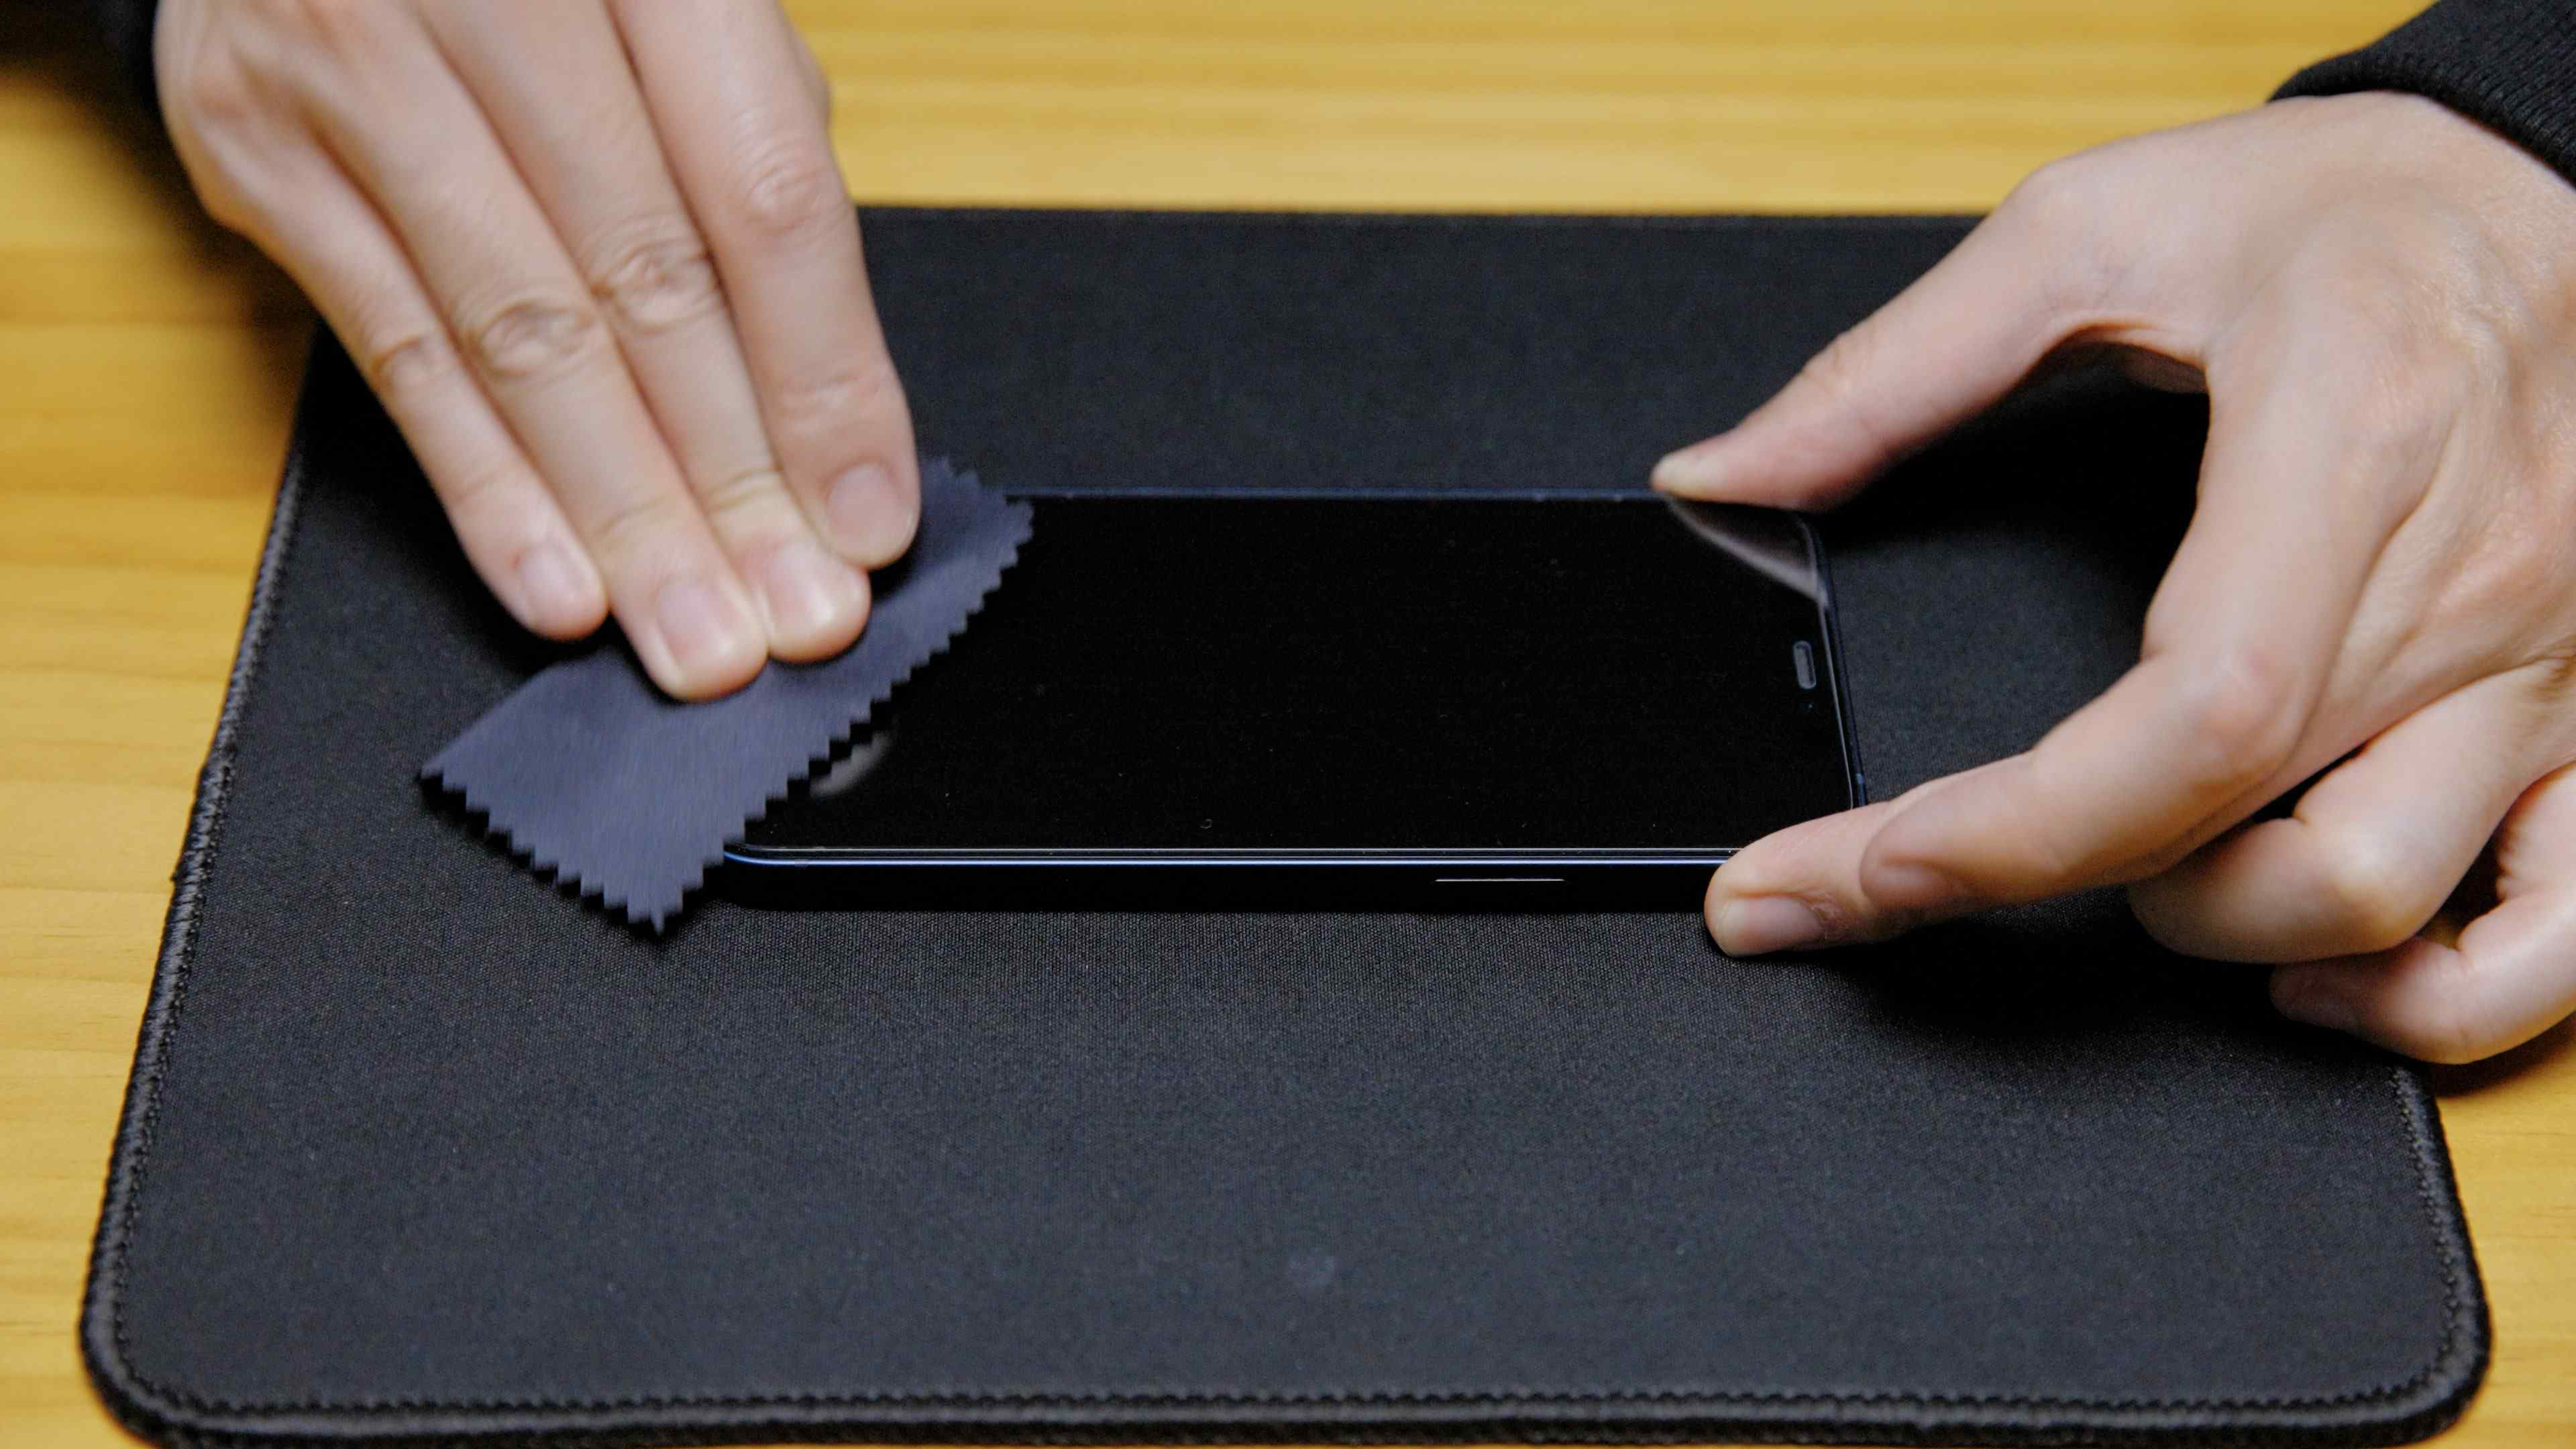 Screen Protector Installation Guide Step 5 : Final Touches